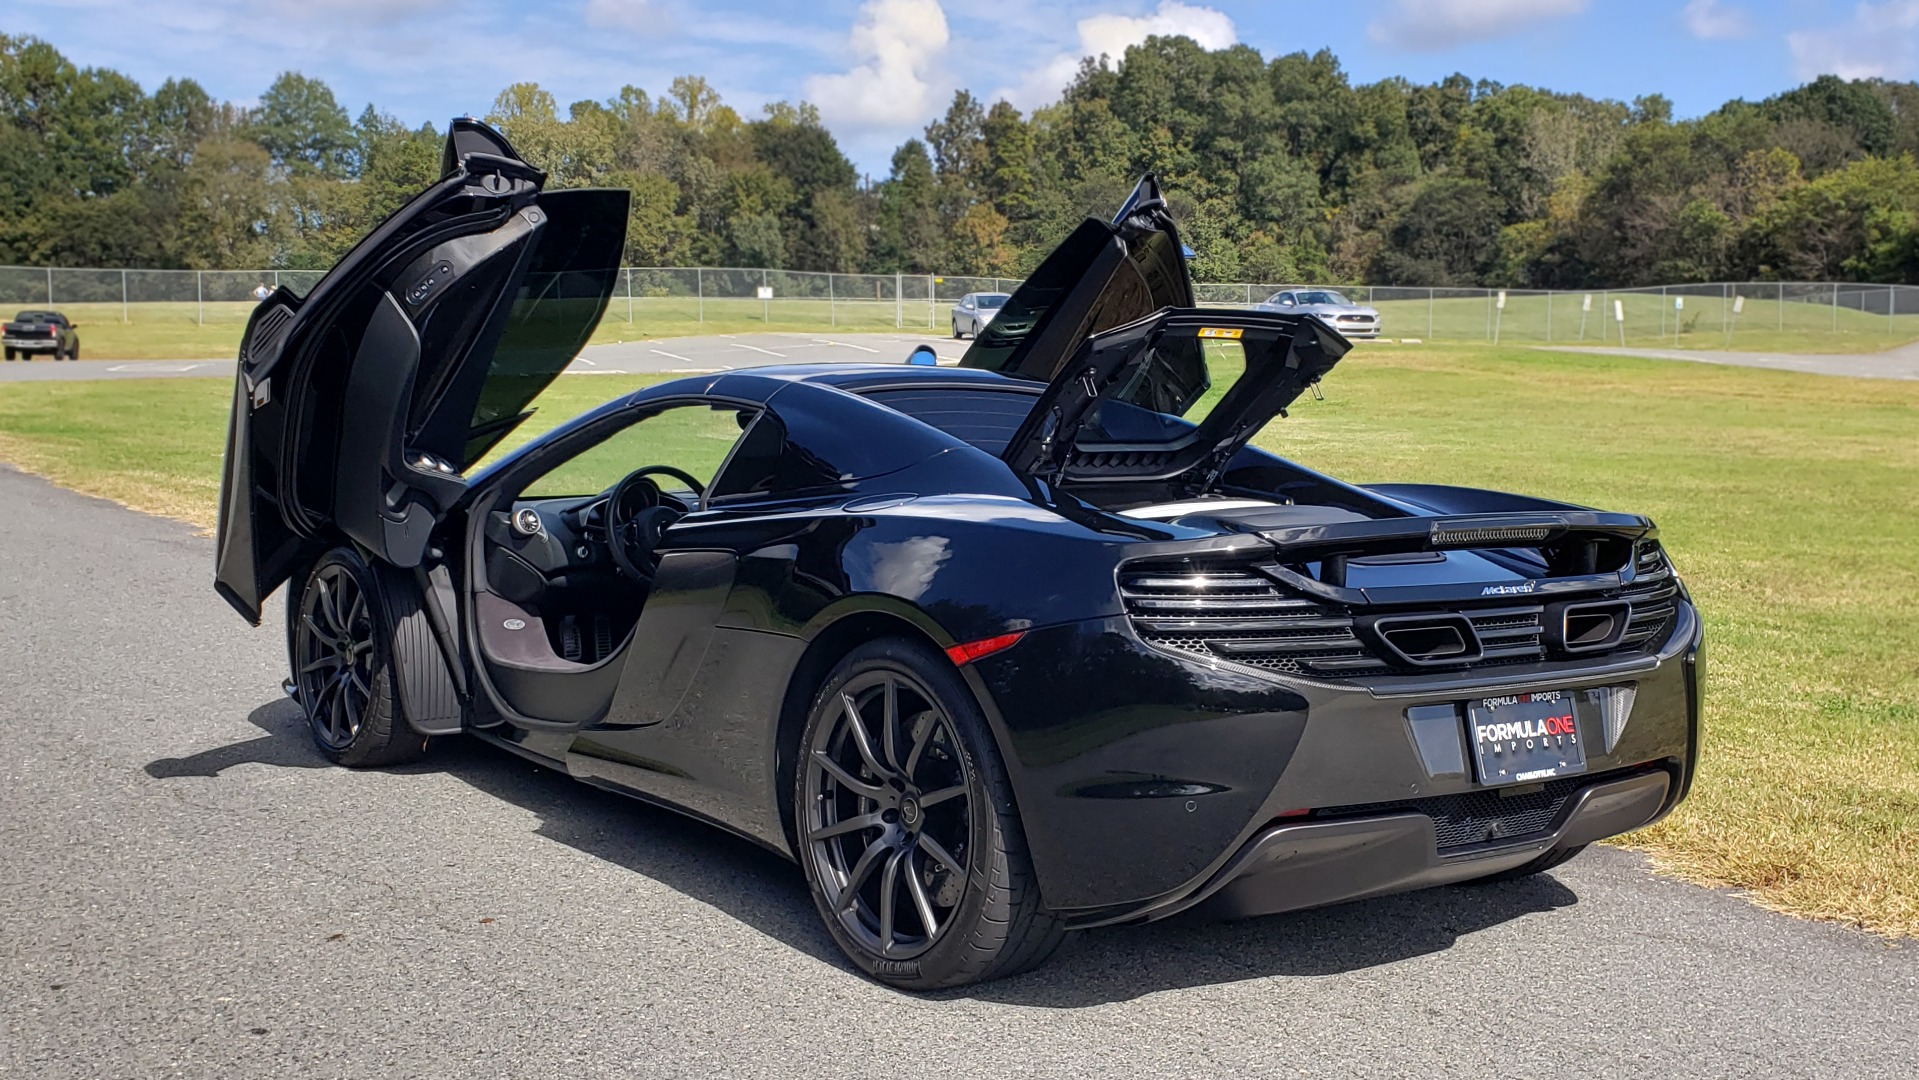 Used 2016 McLaren 650S SPIDER / 641HP / PARK SENSORS / LOW MILES / 1-OWNER for sale Sold at Formula Imports in Charlotte NC 28227 12